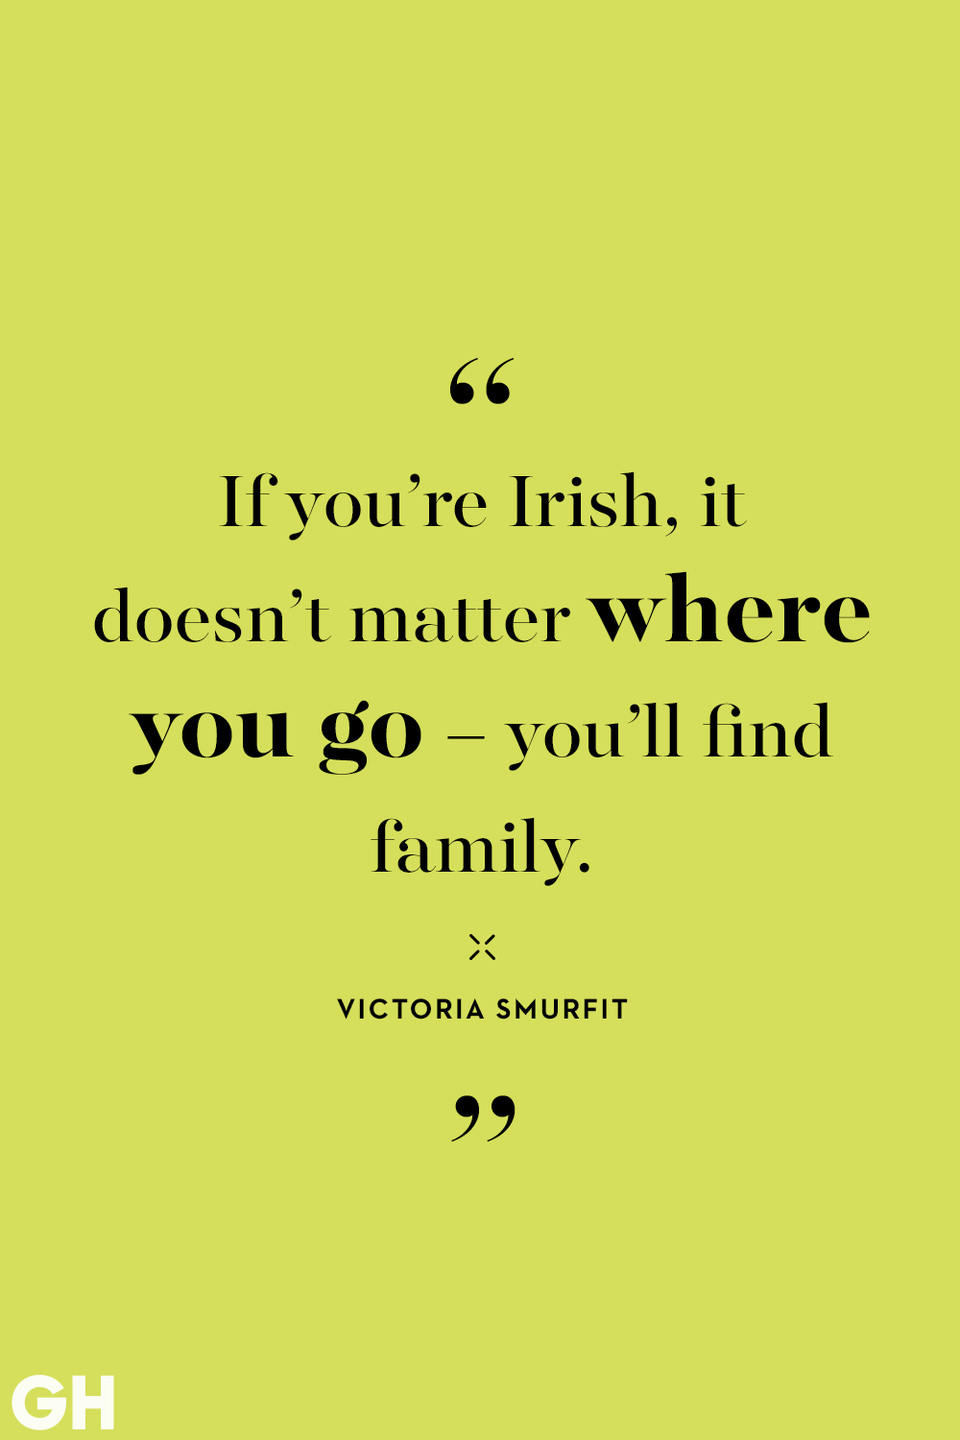 <p>If you're Irish, it doesn't matter where you go — you'll find family.</p>